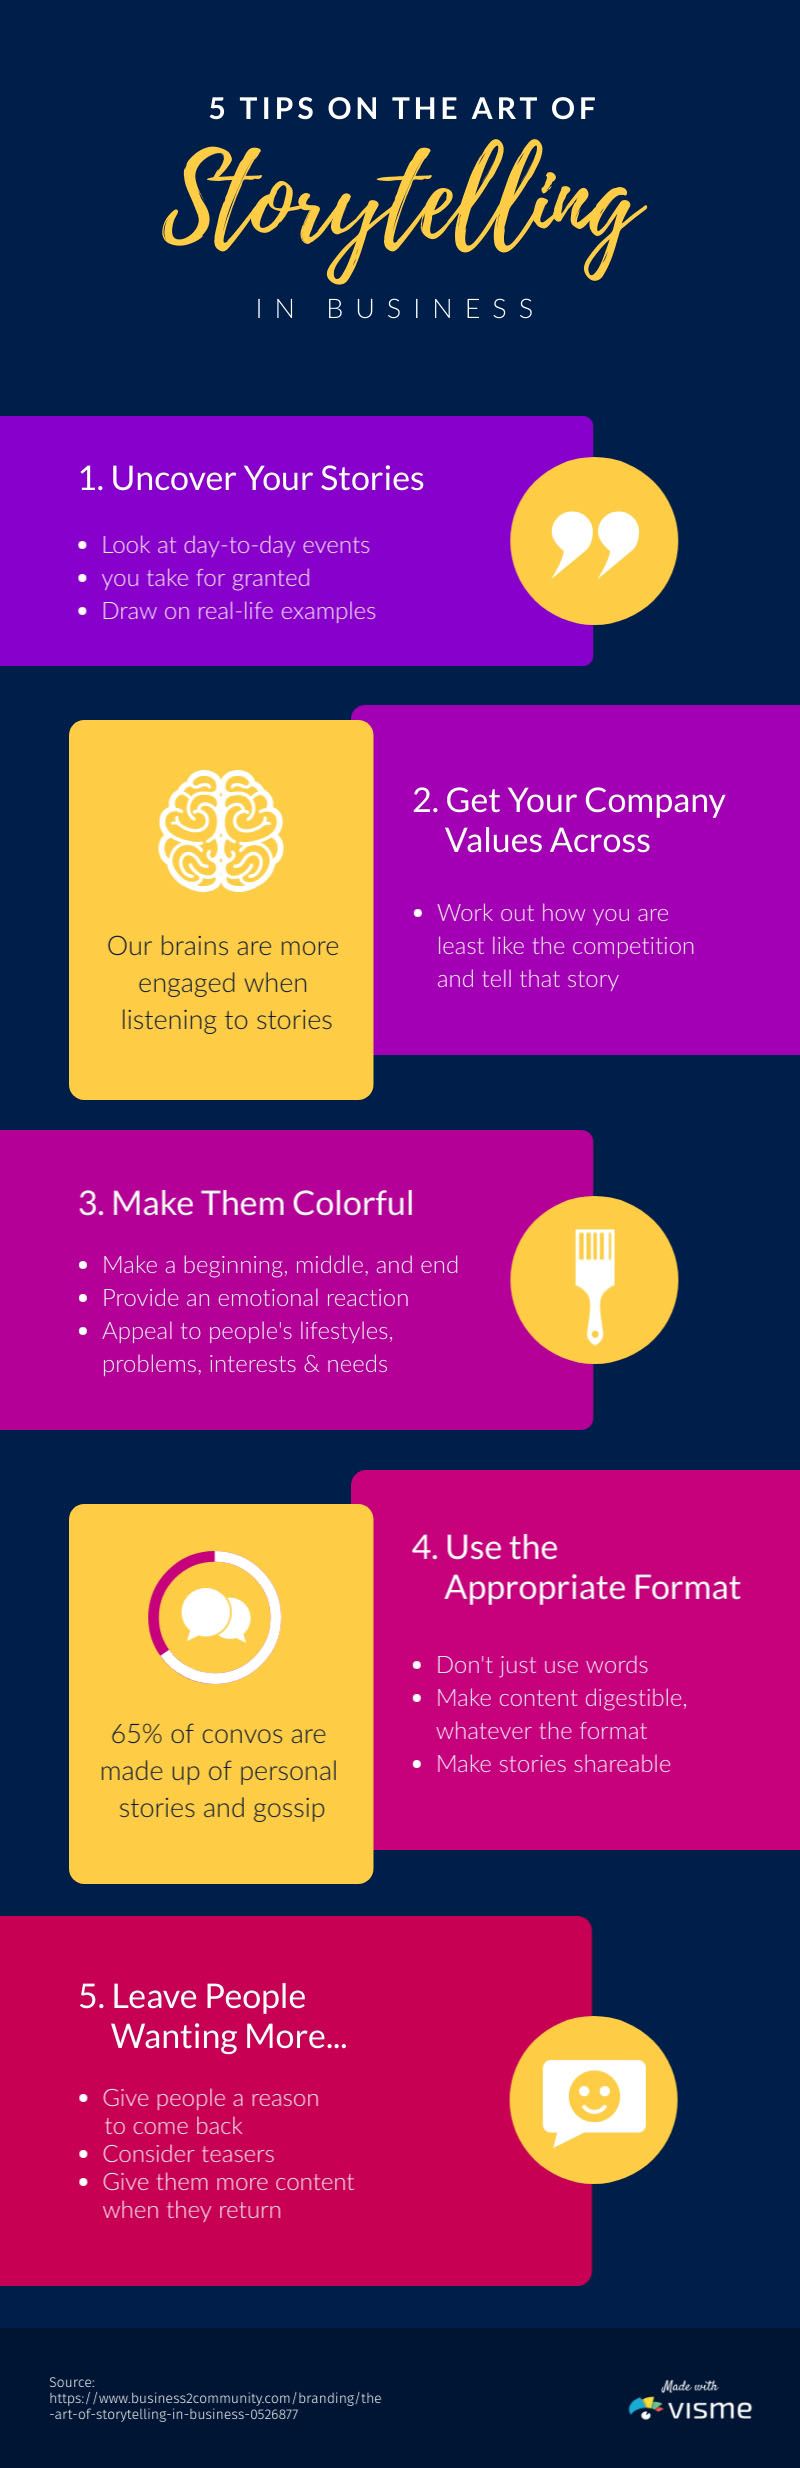 5 Storytelling Tips - Infographic Template